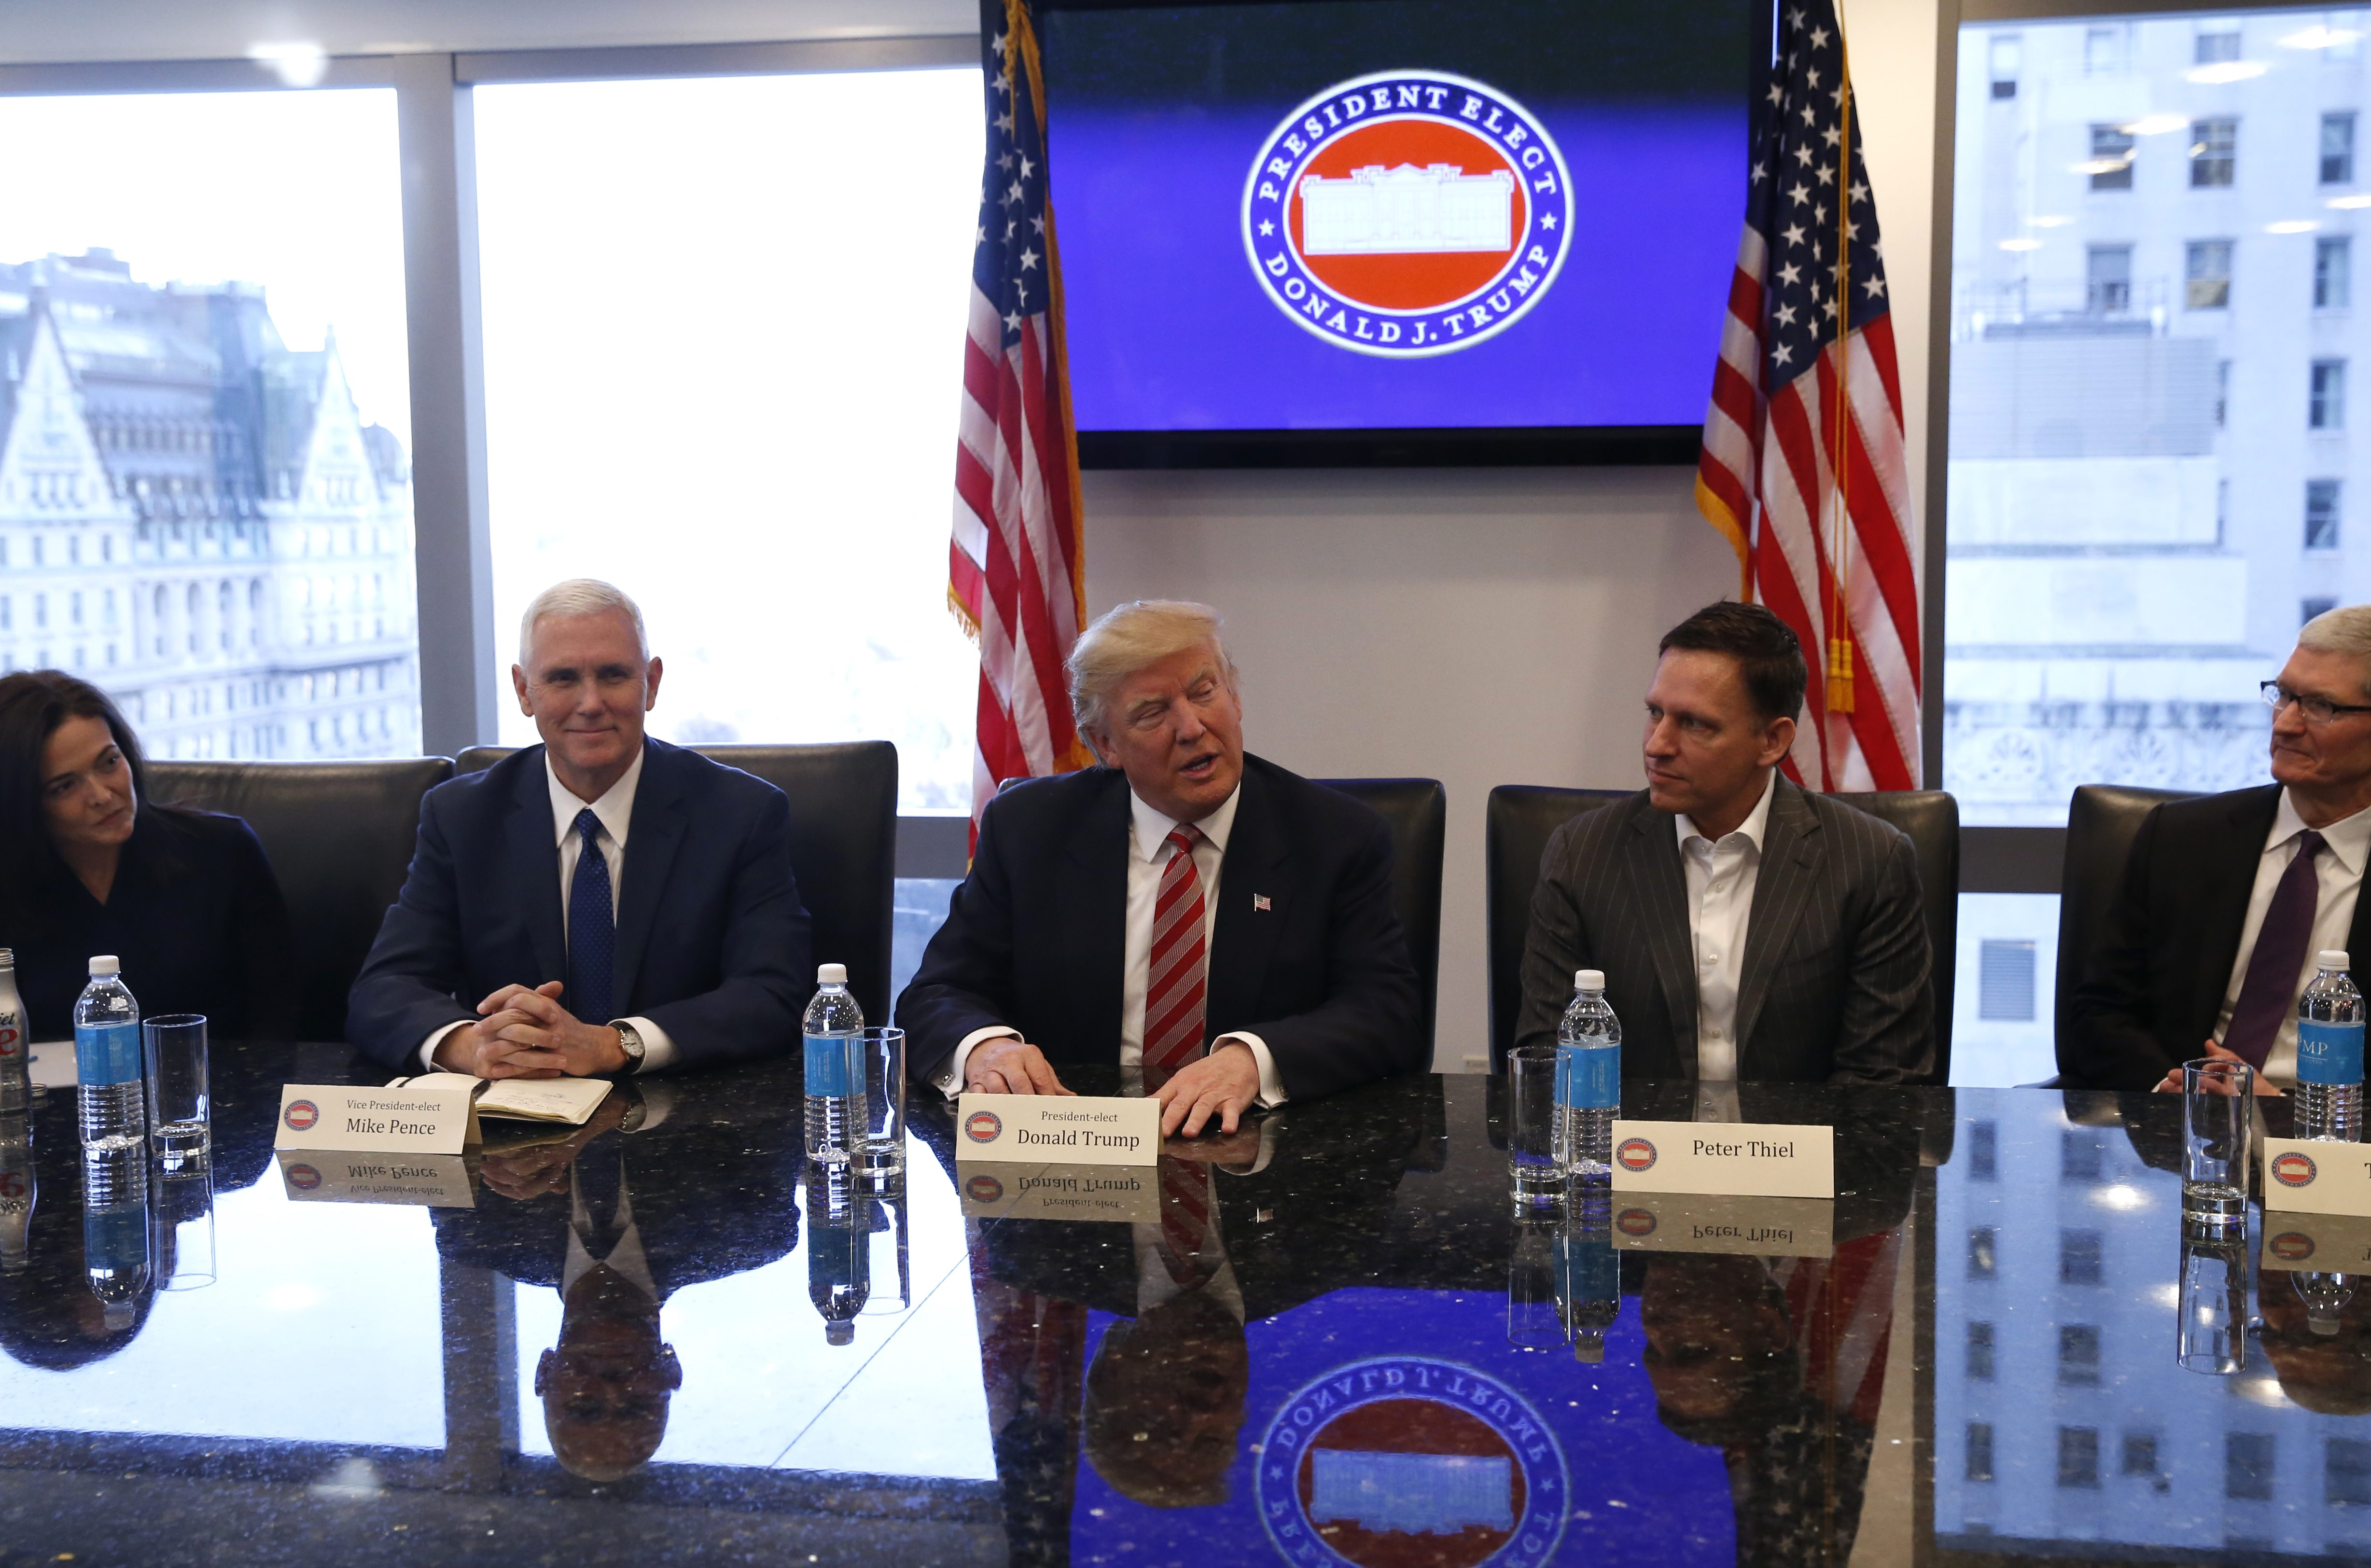 U.S. President-elect Donald Trump (C) sits with Vice President-elect Mike Pence (2ndL) PayPal co-founder and Facebook board member Peter Thiel (2ndR), Apple Inc CEO Tim Cook (R) and Facebook COO Sheryl Sandberg during a meeting with technology leaders at Trump Tower in New York, U.S., December 14, 2016. REUTERS/Shannon Stapleton - RTX2V2W7